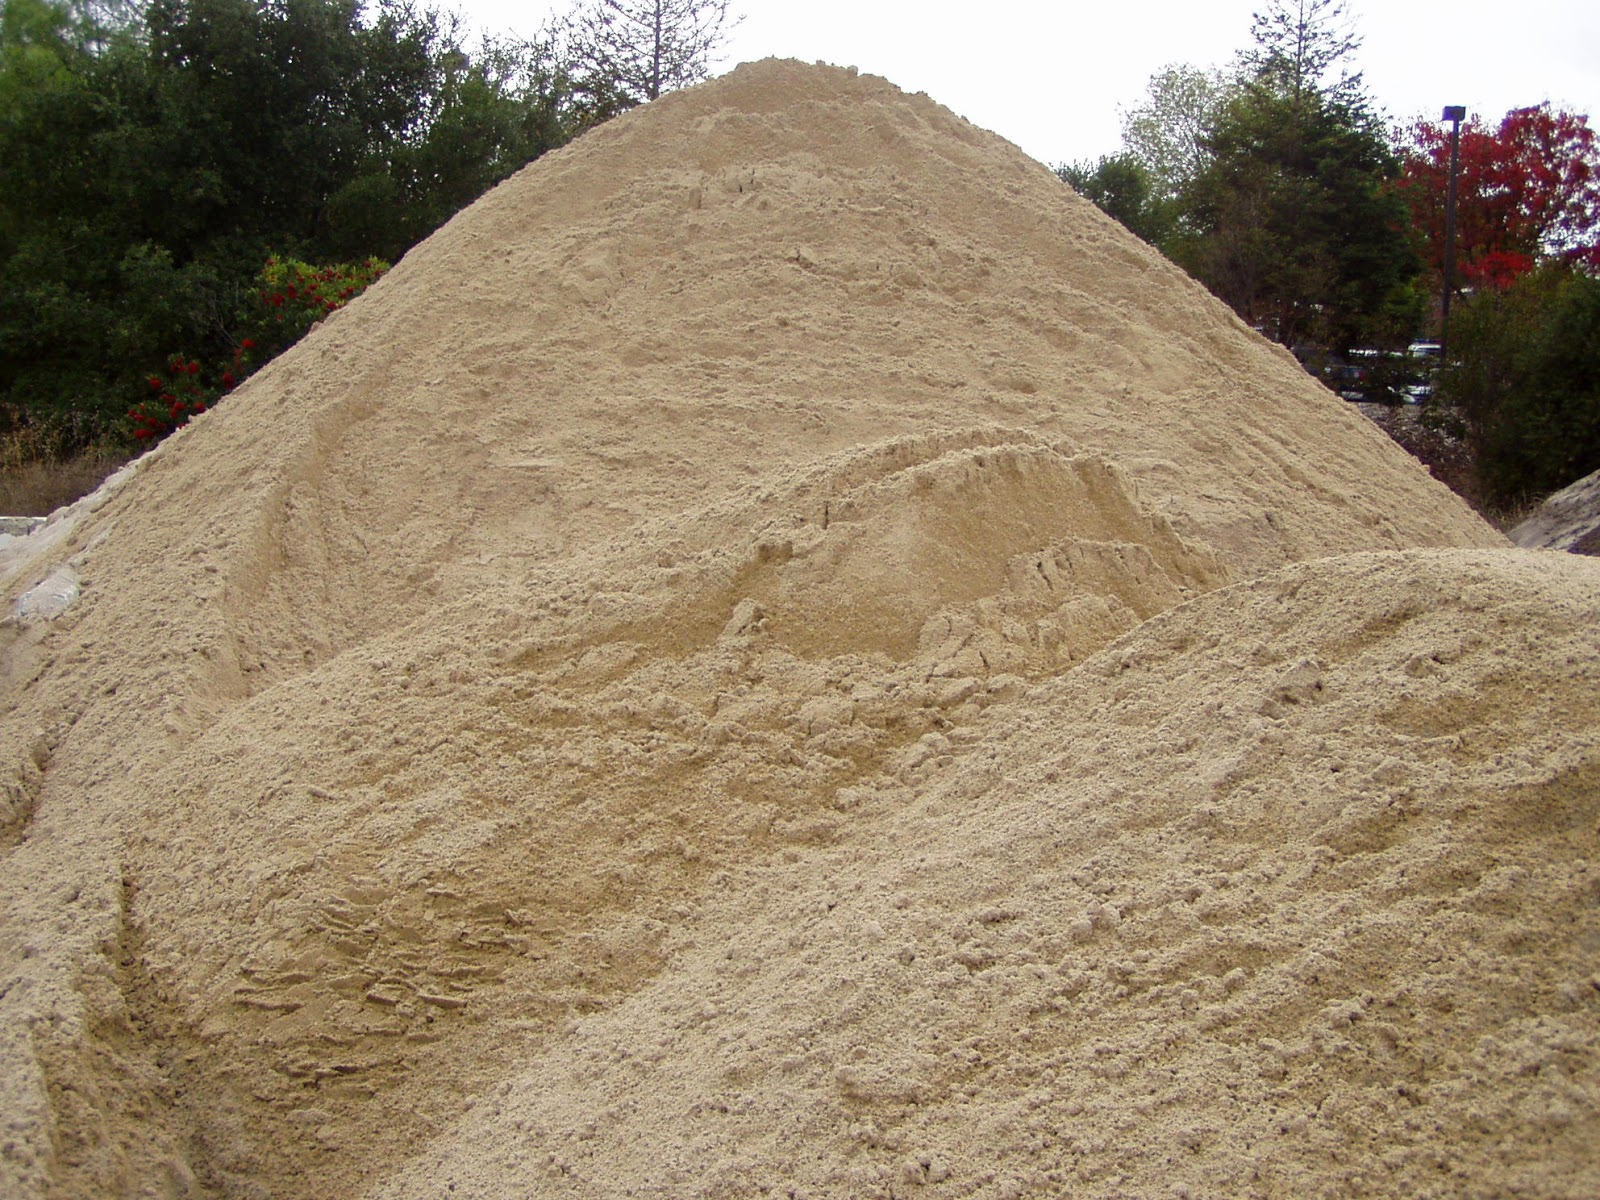 Figure 2: Heap of sand